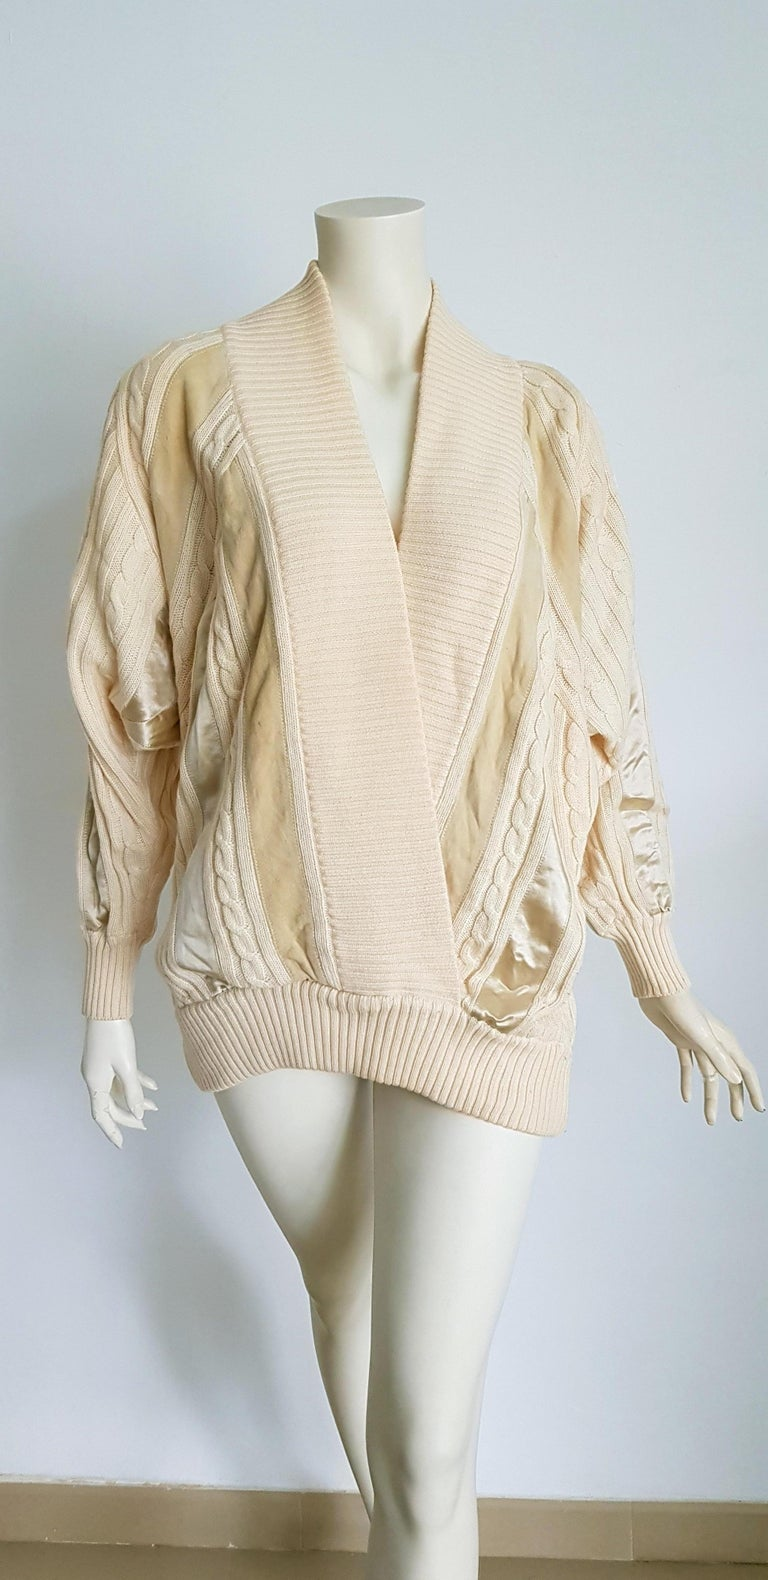 HERMES white cream wool collection sweater with silk suede strips - Unworn, New.  SIZE: equivalent to about Small / Medium, please review approx measurements as follows in cm: lenght 79, chest underarm to underarm 60, bust circumference 120, sleeve